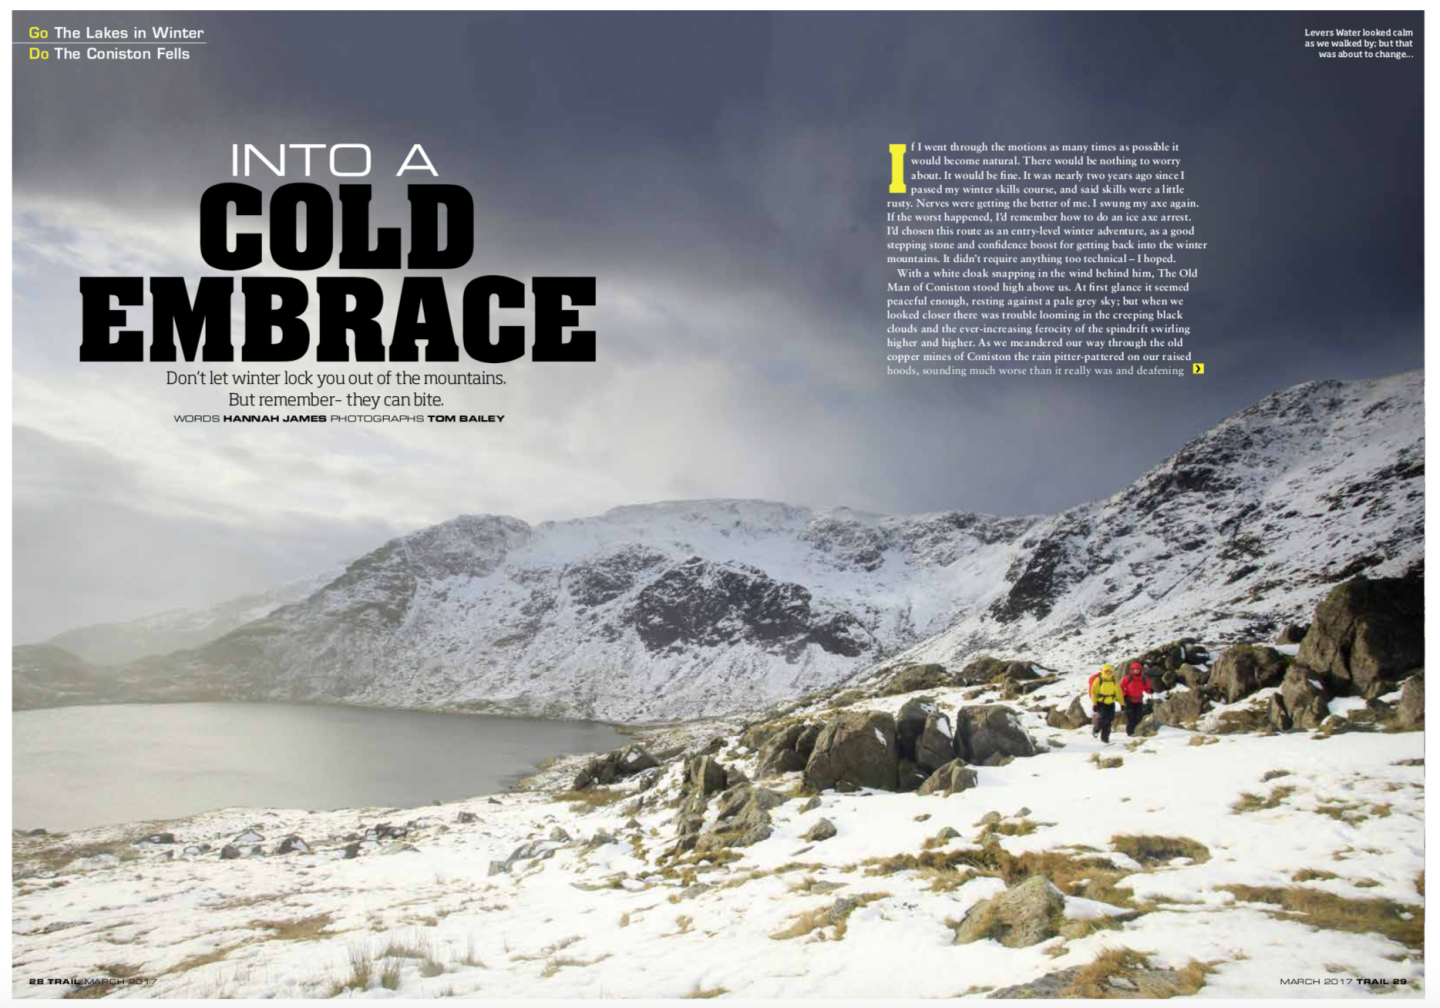 The Old Man of Coniston | winter walking | Trail magazine